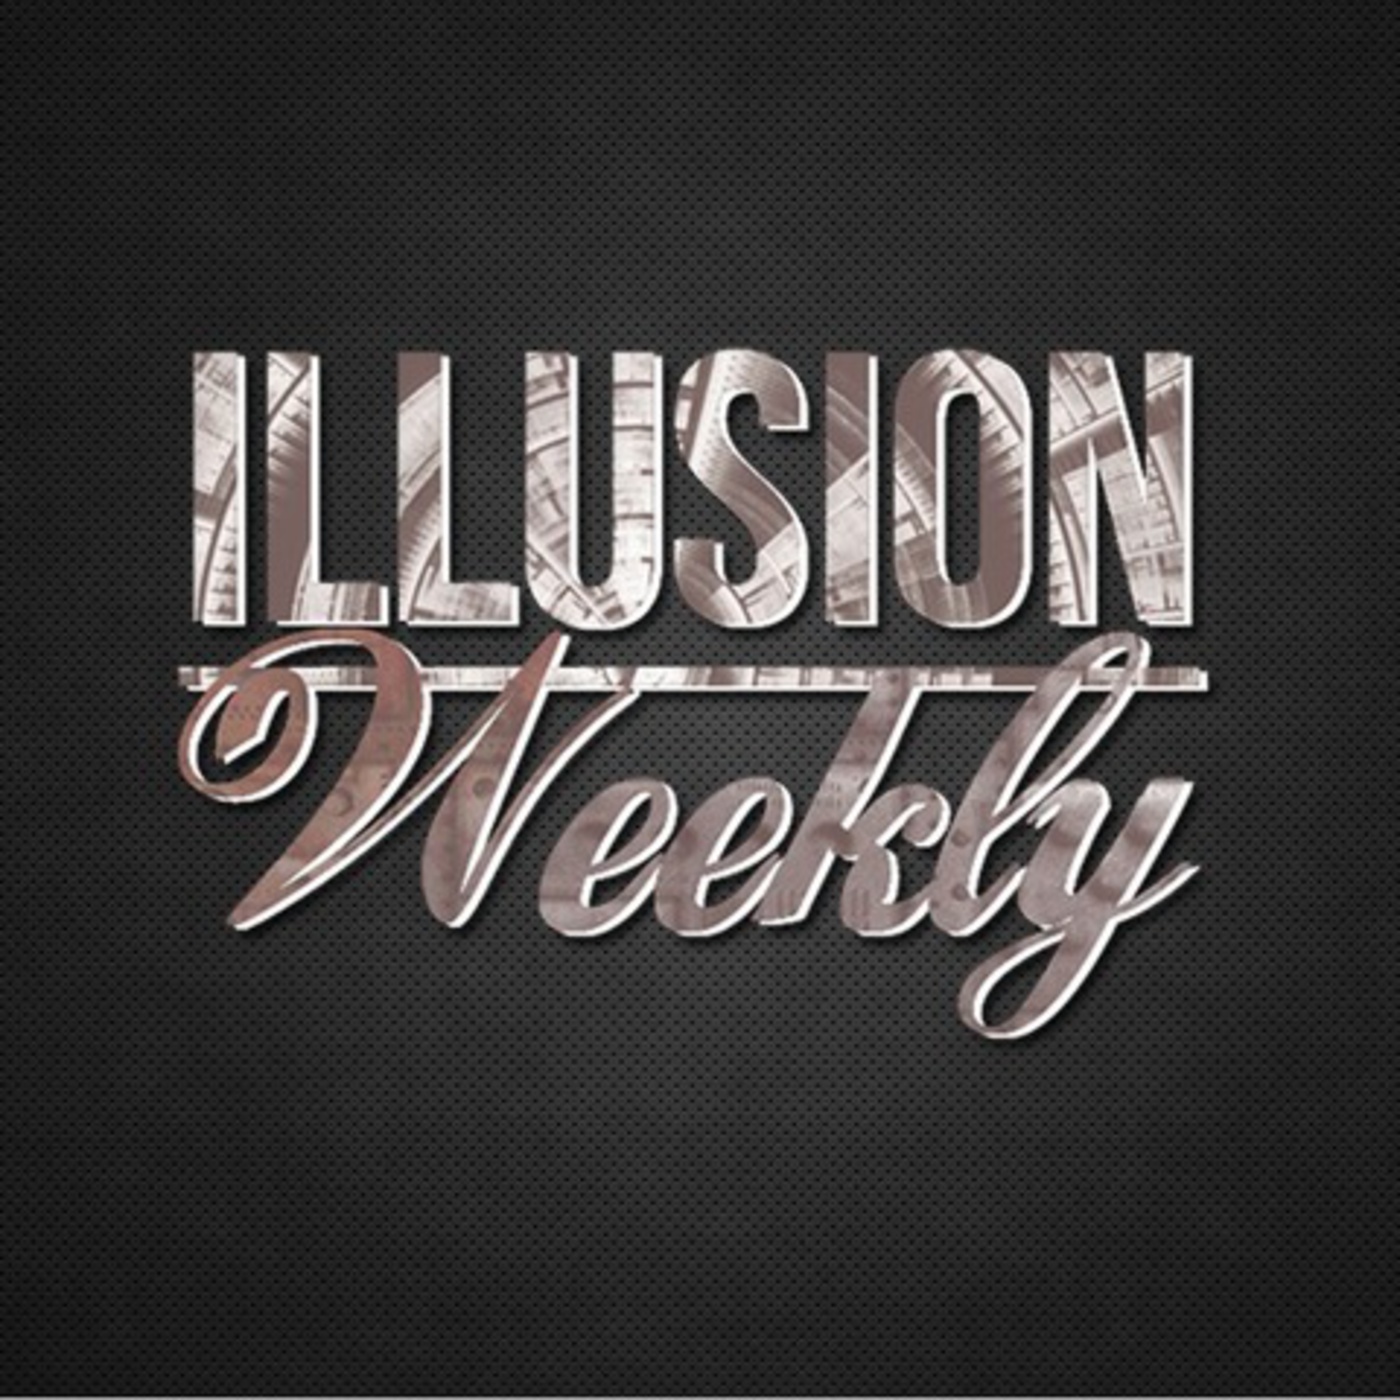 Illusion Weekly